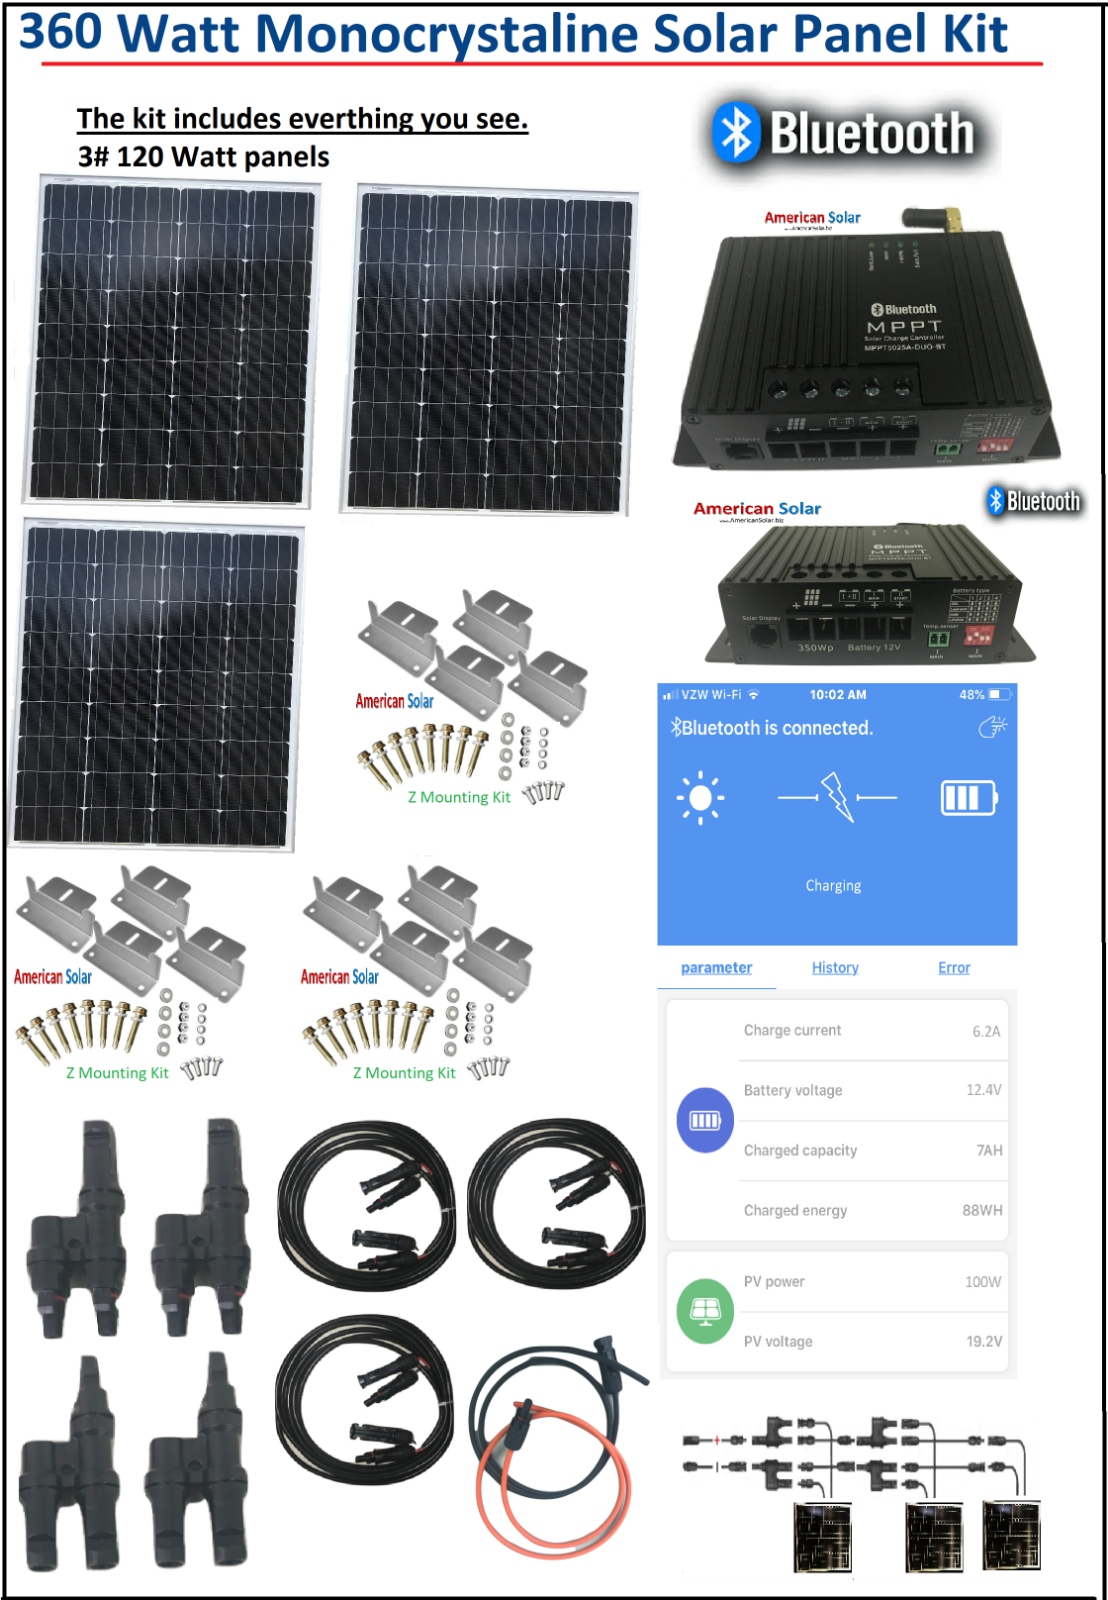 3  # Monocrystalline 120 3# Sets of Z brackets 4 # MC4 branch connectors. 1# Pair of MC4 cables  3# Sets 12 foot copper 2/16 gauge MC4 connectors 1# American Solar AM30A Mppt Blue-Tooth 30A Solar charge